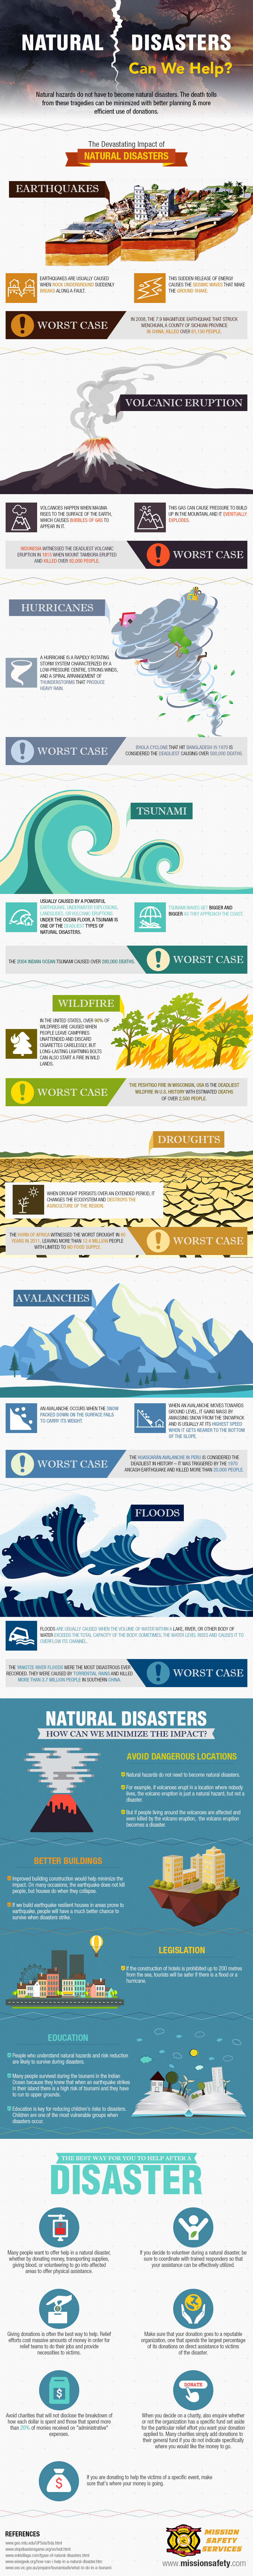 natural-disasters-can-we-help-infographic